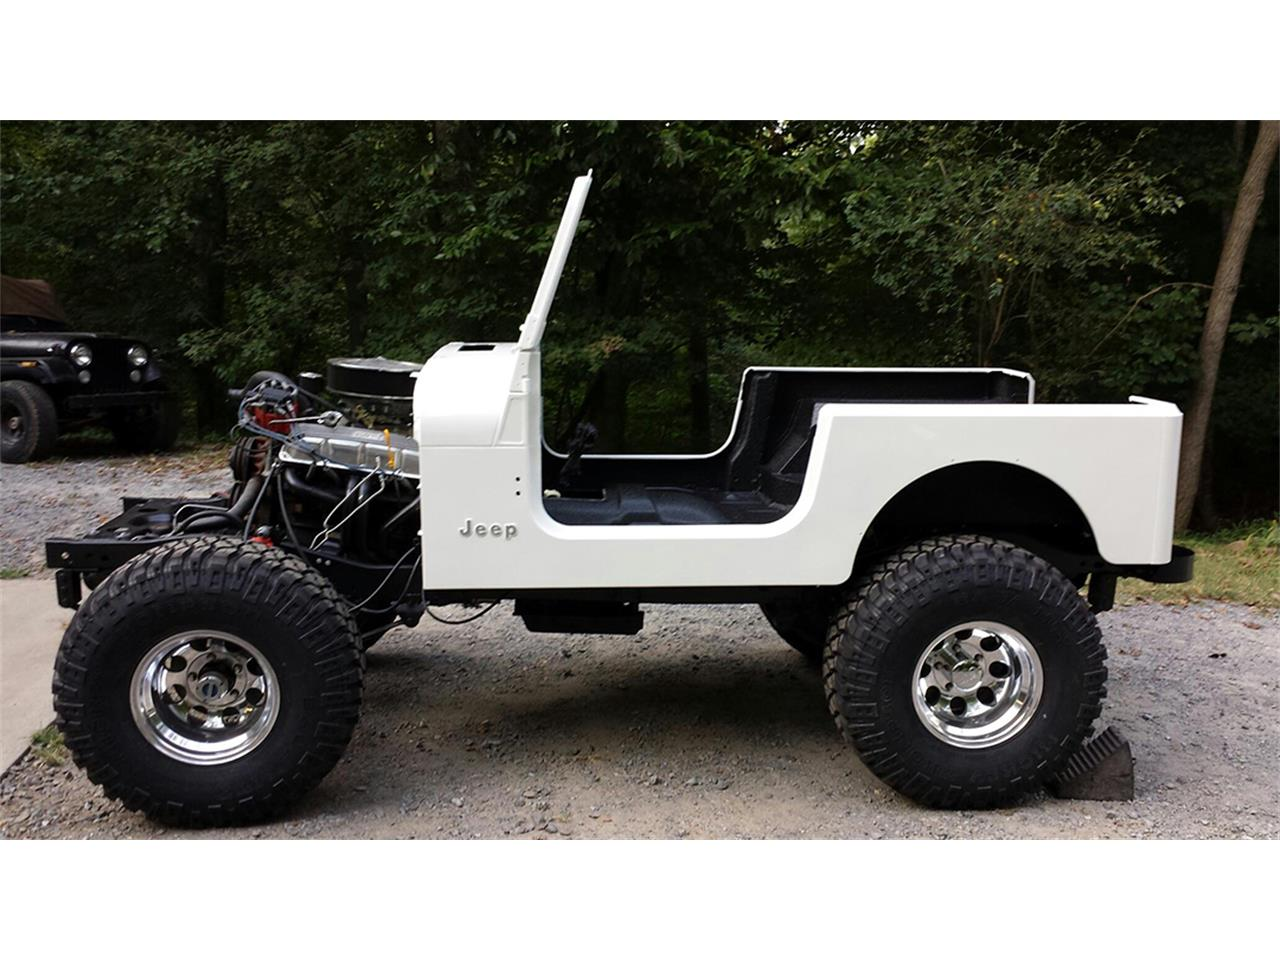 Large Picture of '81 CJ7 located in North Carolina Offered by a Private Seller - QUA5